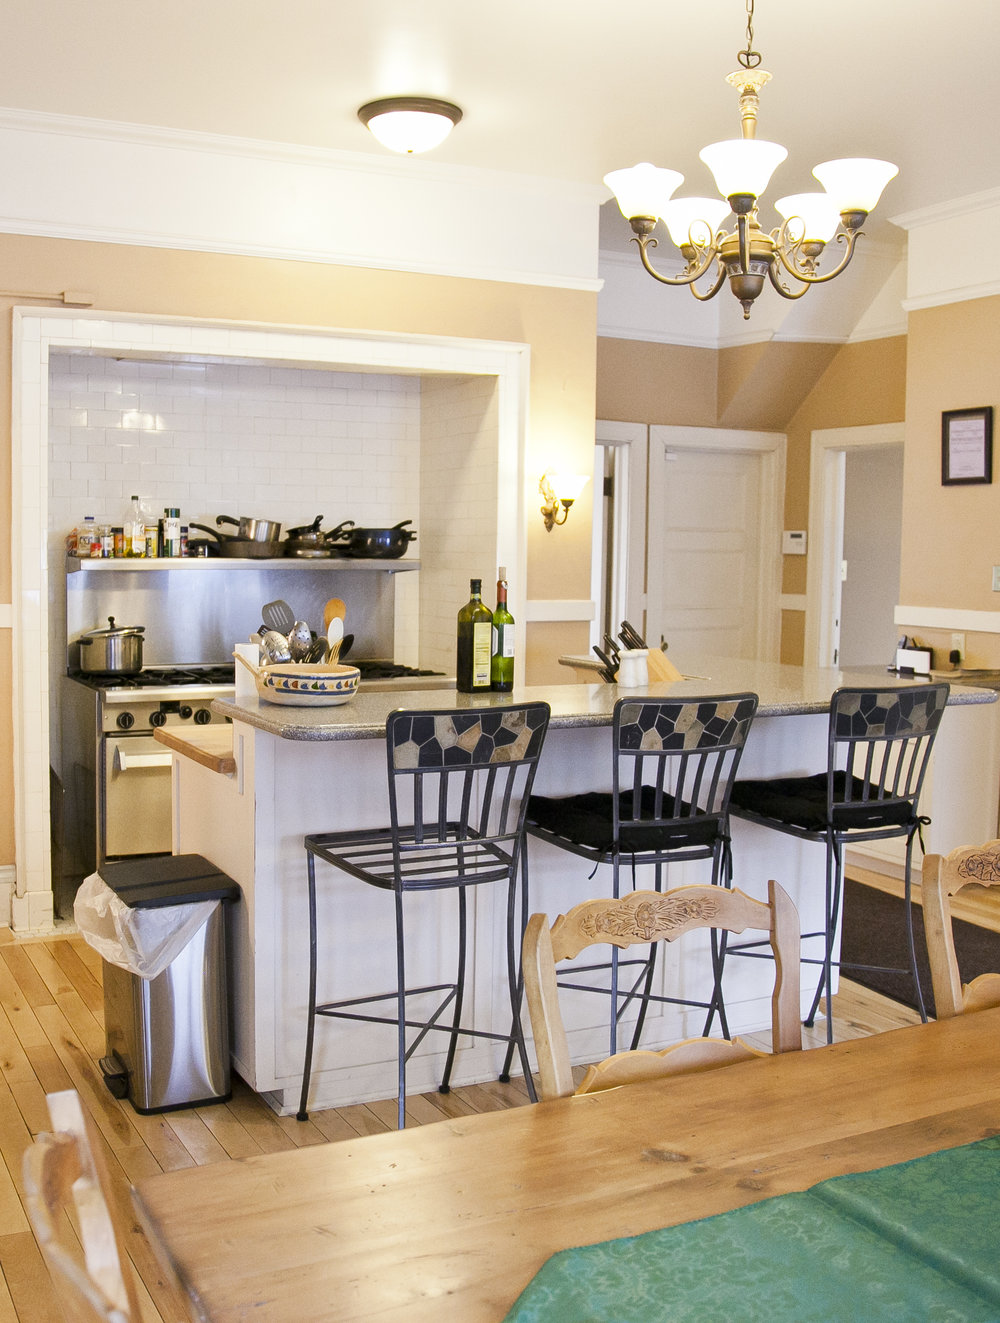 For Your Convenience: - Large fully equipped kitchenRefrigerator and storage spaceLarge living room with 55 inch, flat-screen TVHigh-speed wireless internet in all roomsGames and books for guest useDining room with seating for 18 to entertain guestsLaundry facilities on site½ bath on first floorOutdoor grillPorch swing